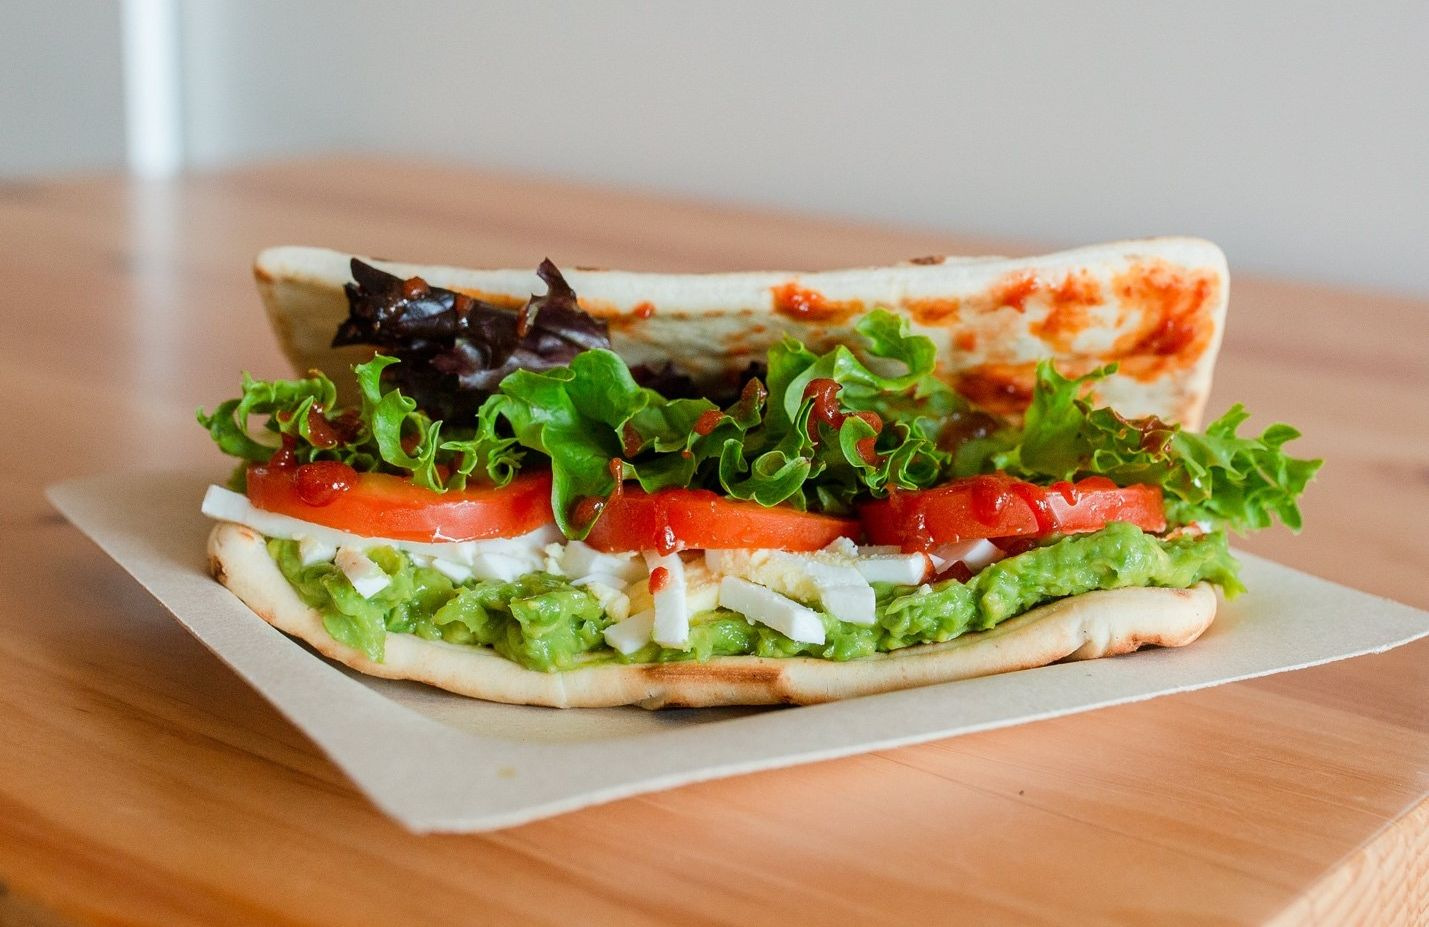 Wow Wow Hawaiian Lemonade Launches Limited Fall Menu with Focus on Pumpkin Spice, Avo Egg Salad Flatbread Sandwiches and More